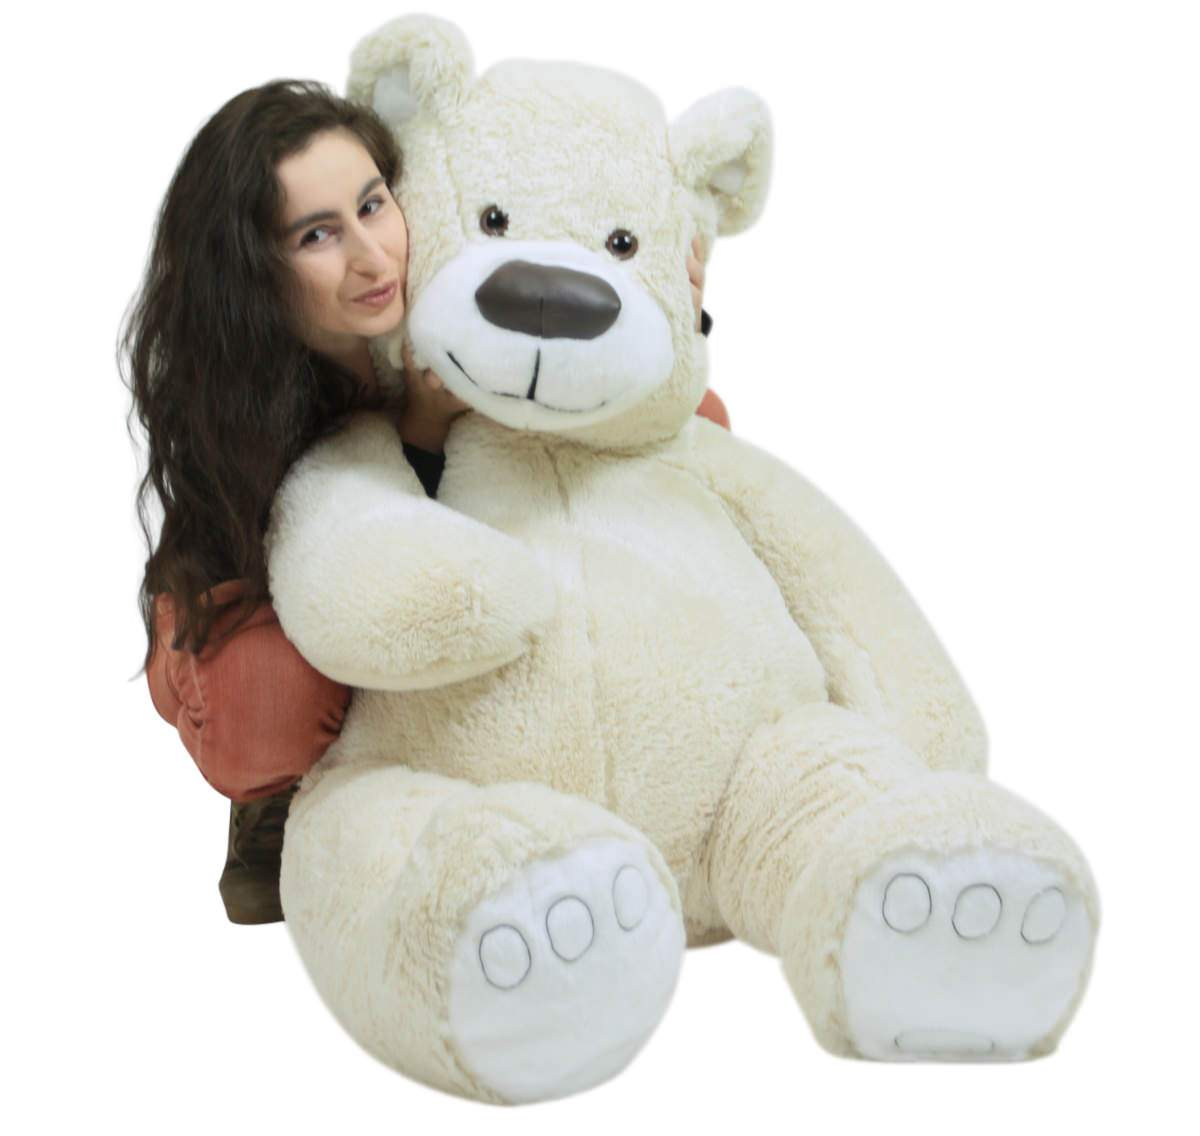 American Made Giant White Teddy Bear Soft 55 Inches Almost 5 Feet Tall